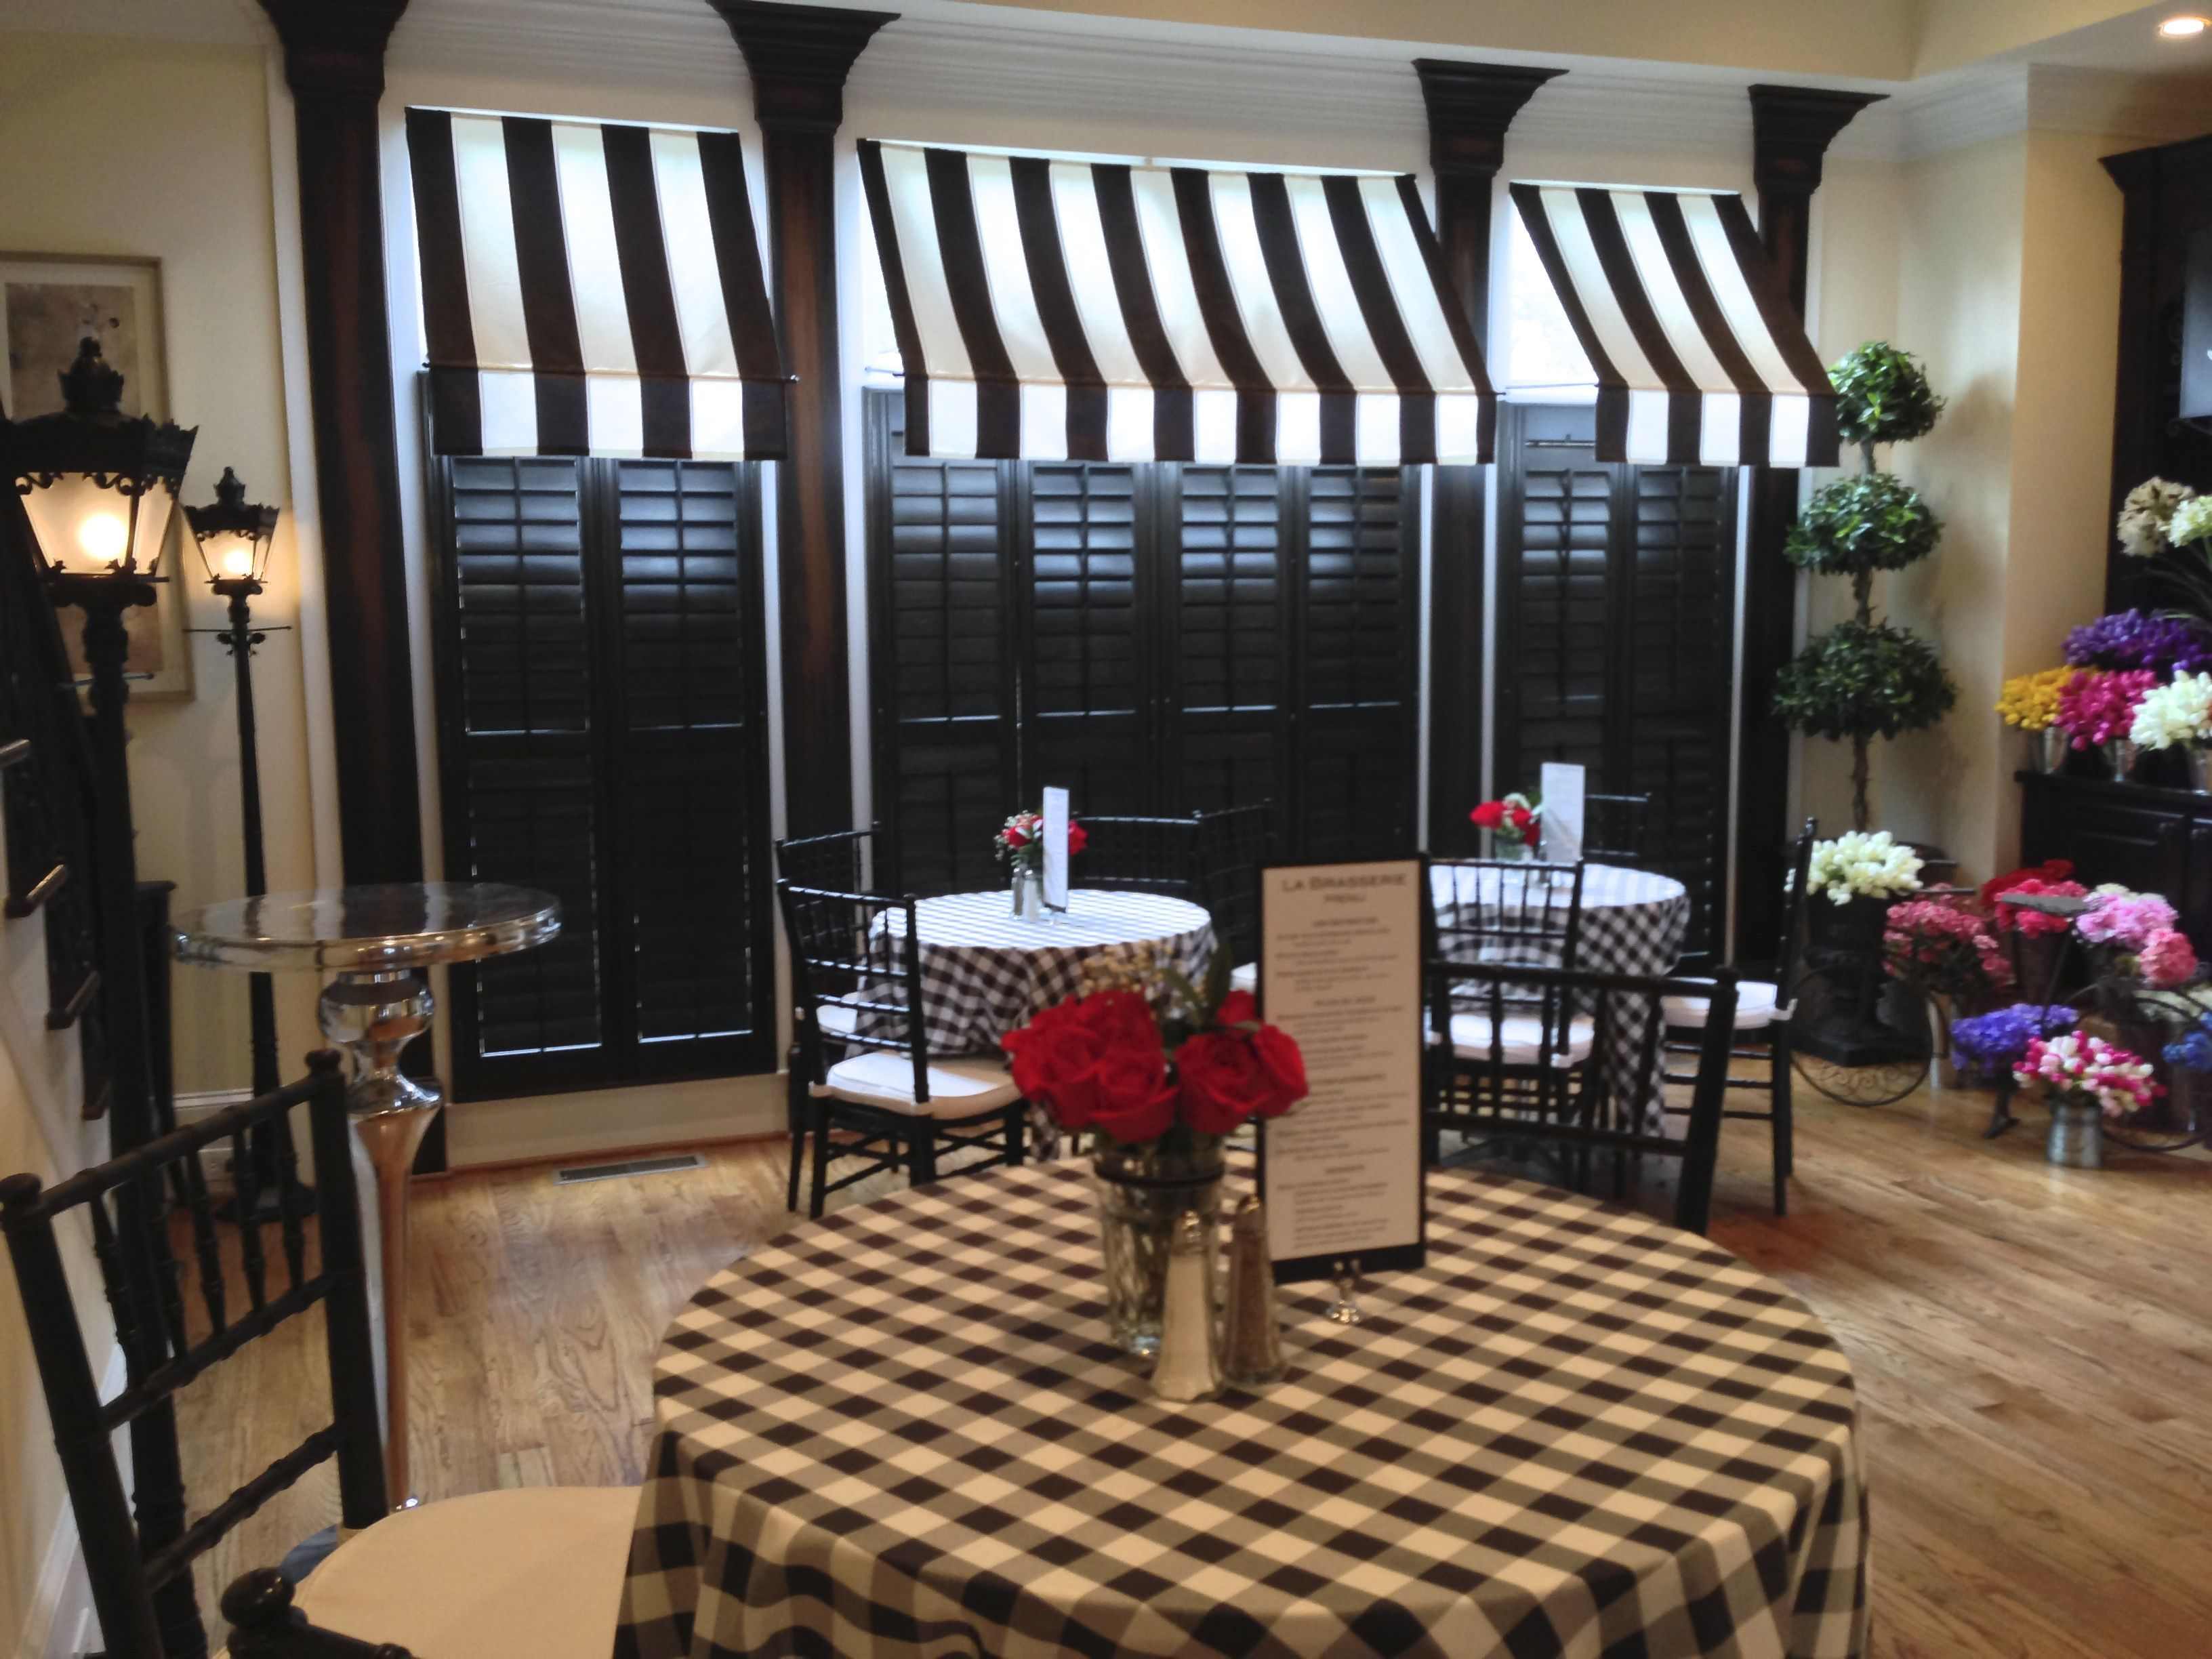 cafe themed kitchen decor stonewall products black and white awnings created the feel of a parisian